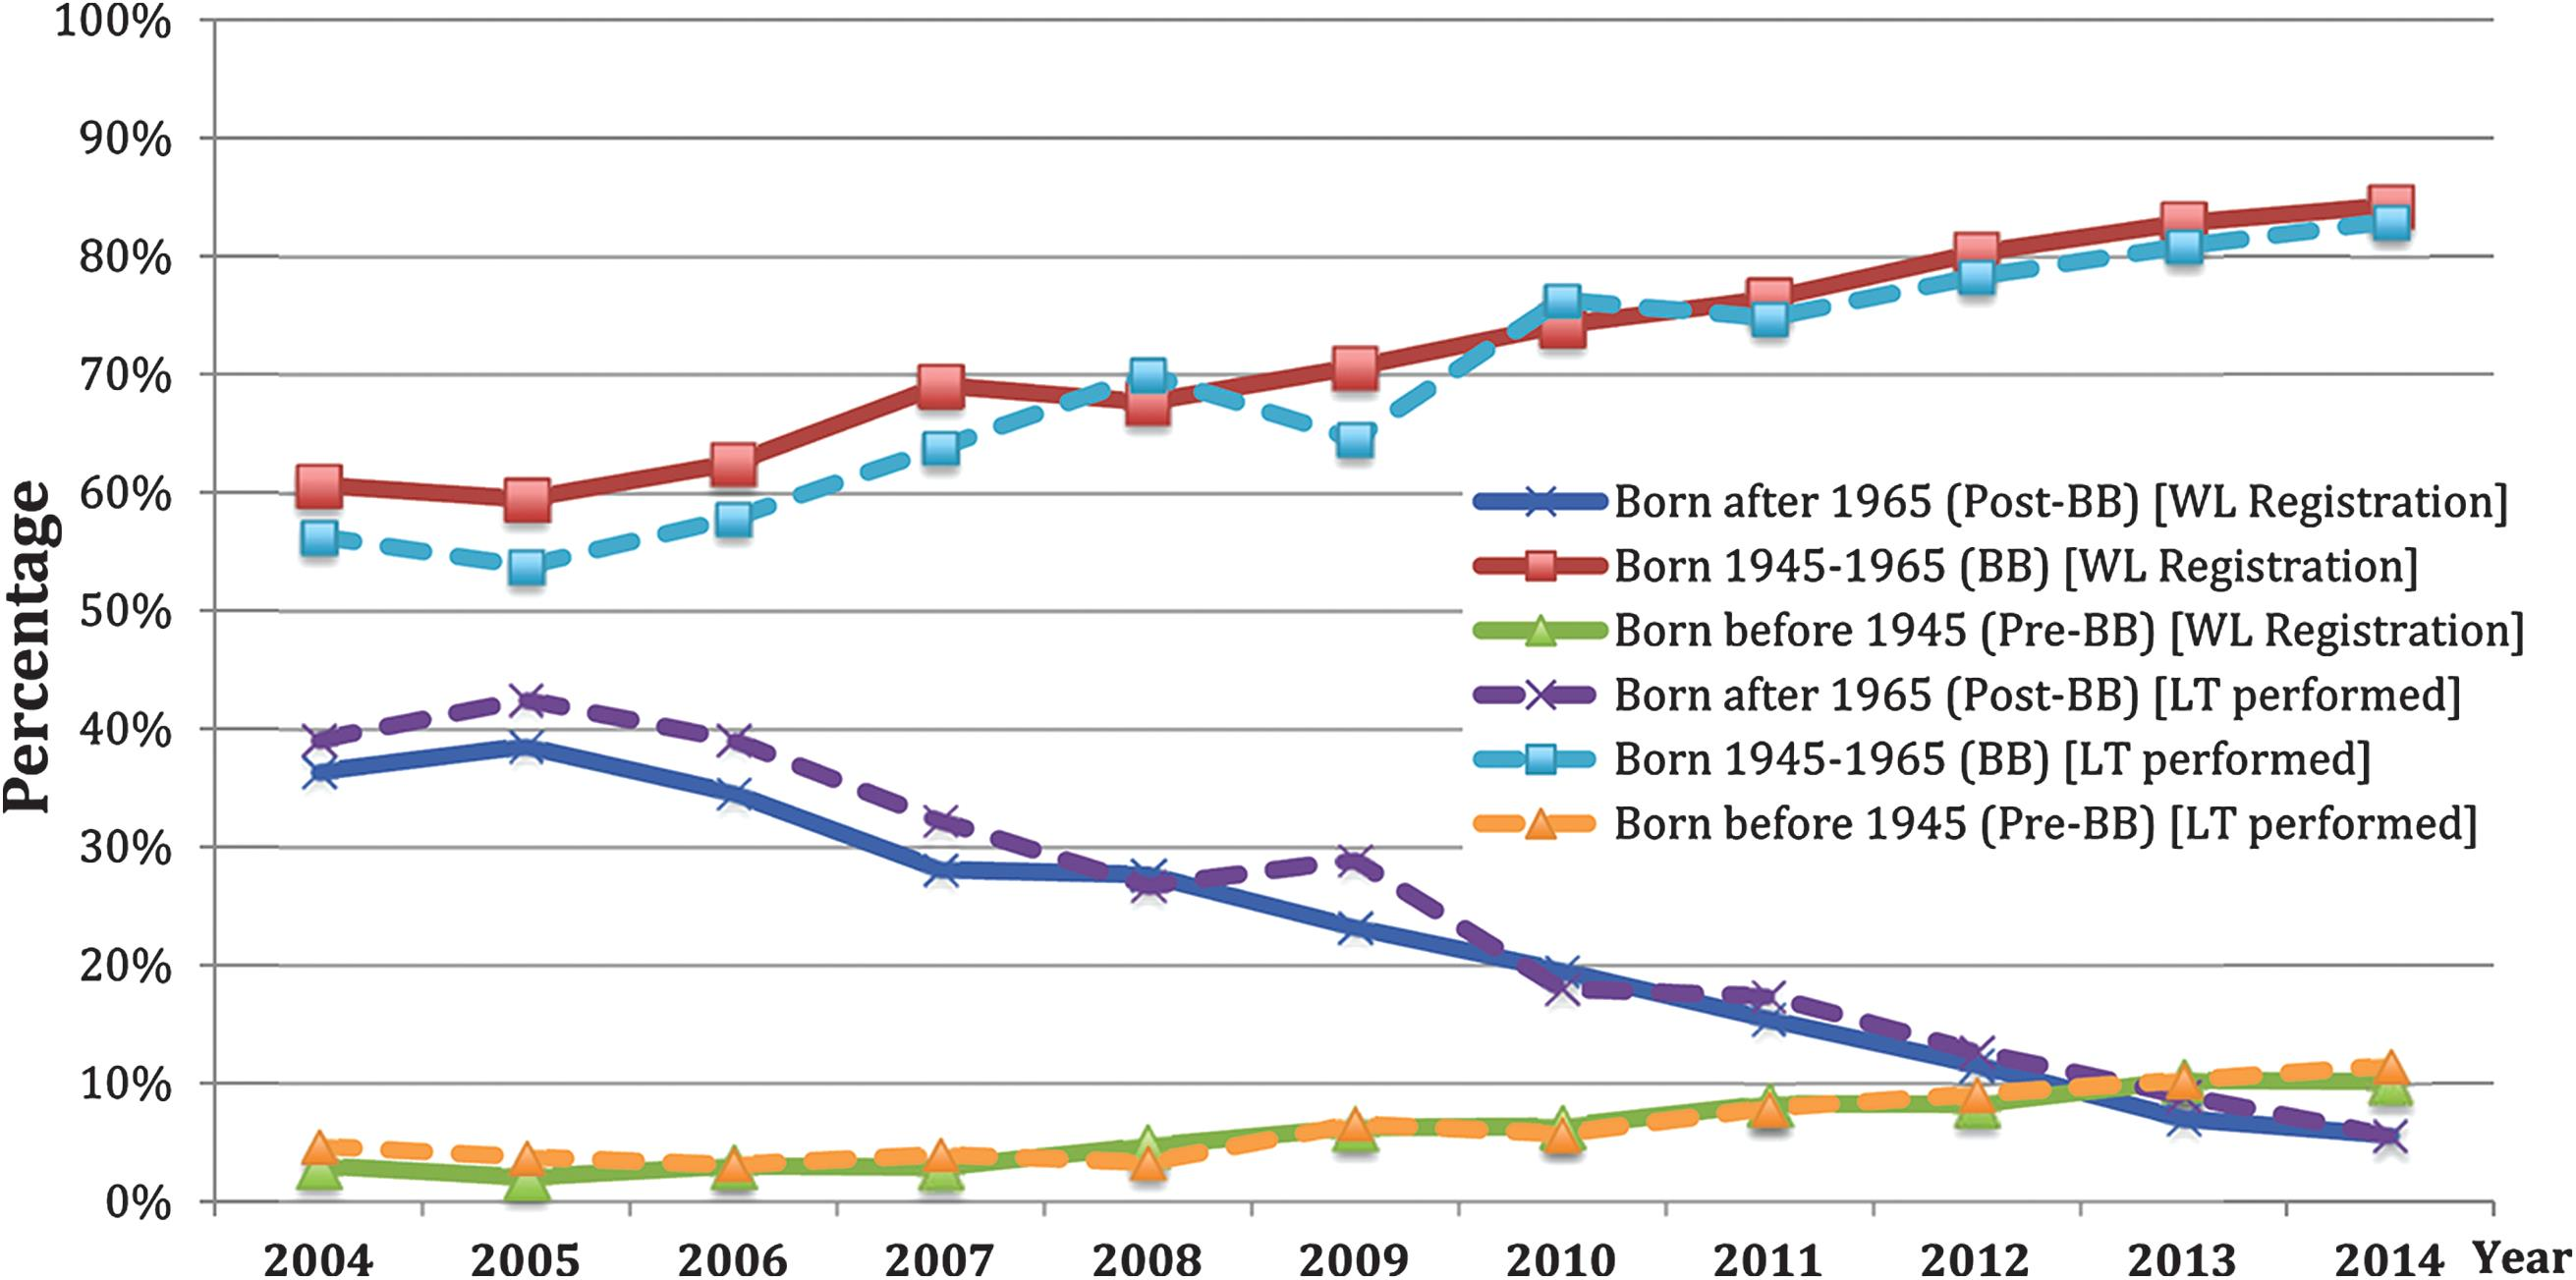 Annual waitlist registrations for non-alcoholic steatohepatitis (NASH) and annual NASH-related liver transplants by birth cohorts from 2004–2014.